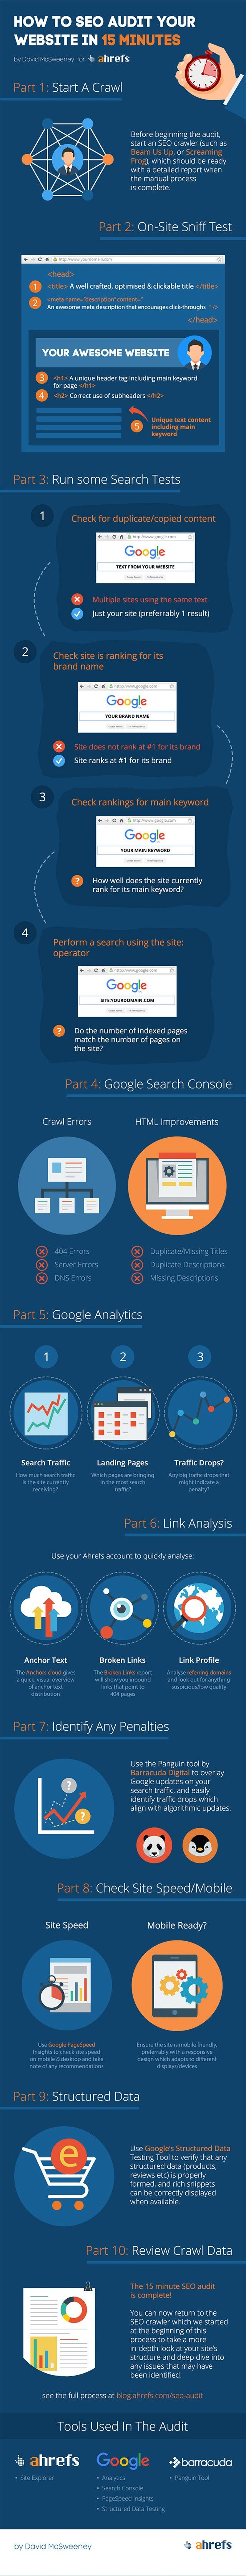 How to SEO Audit Your Website in 15 Minutes [Infographic] | Social Media Today